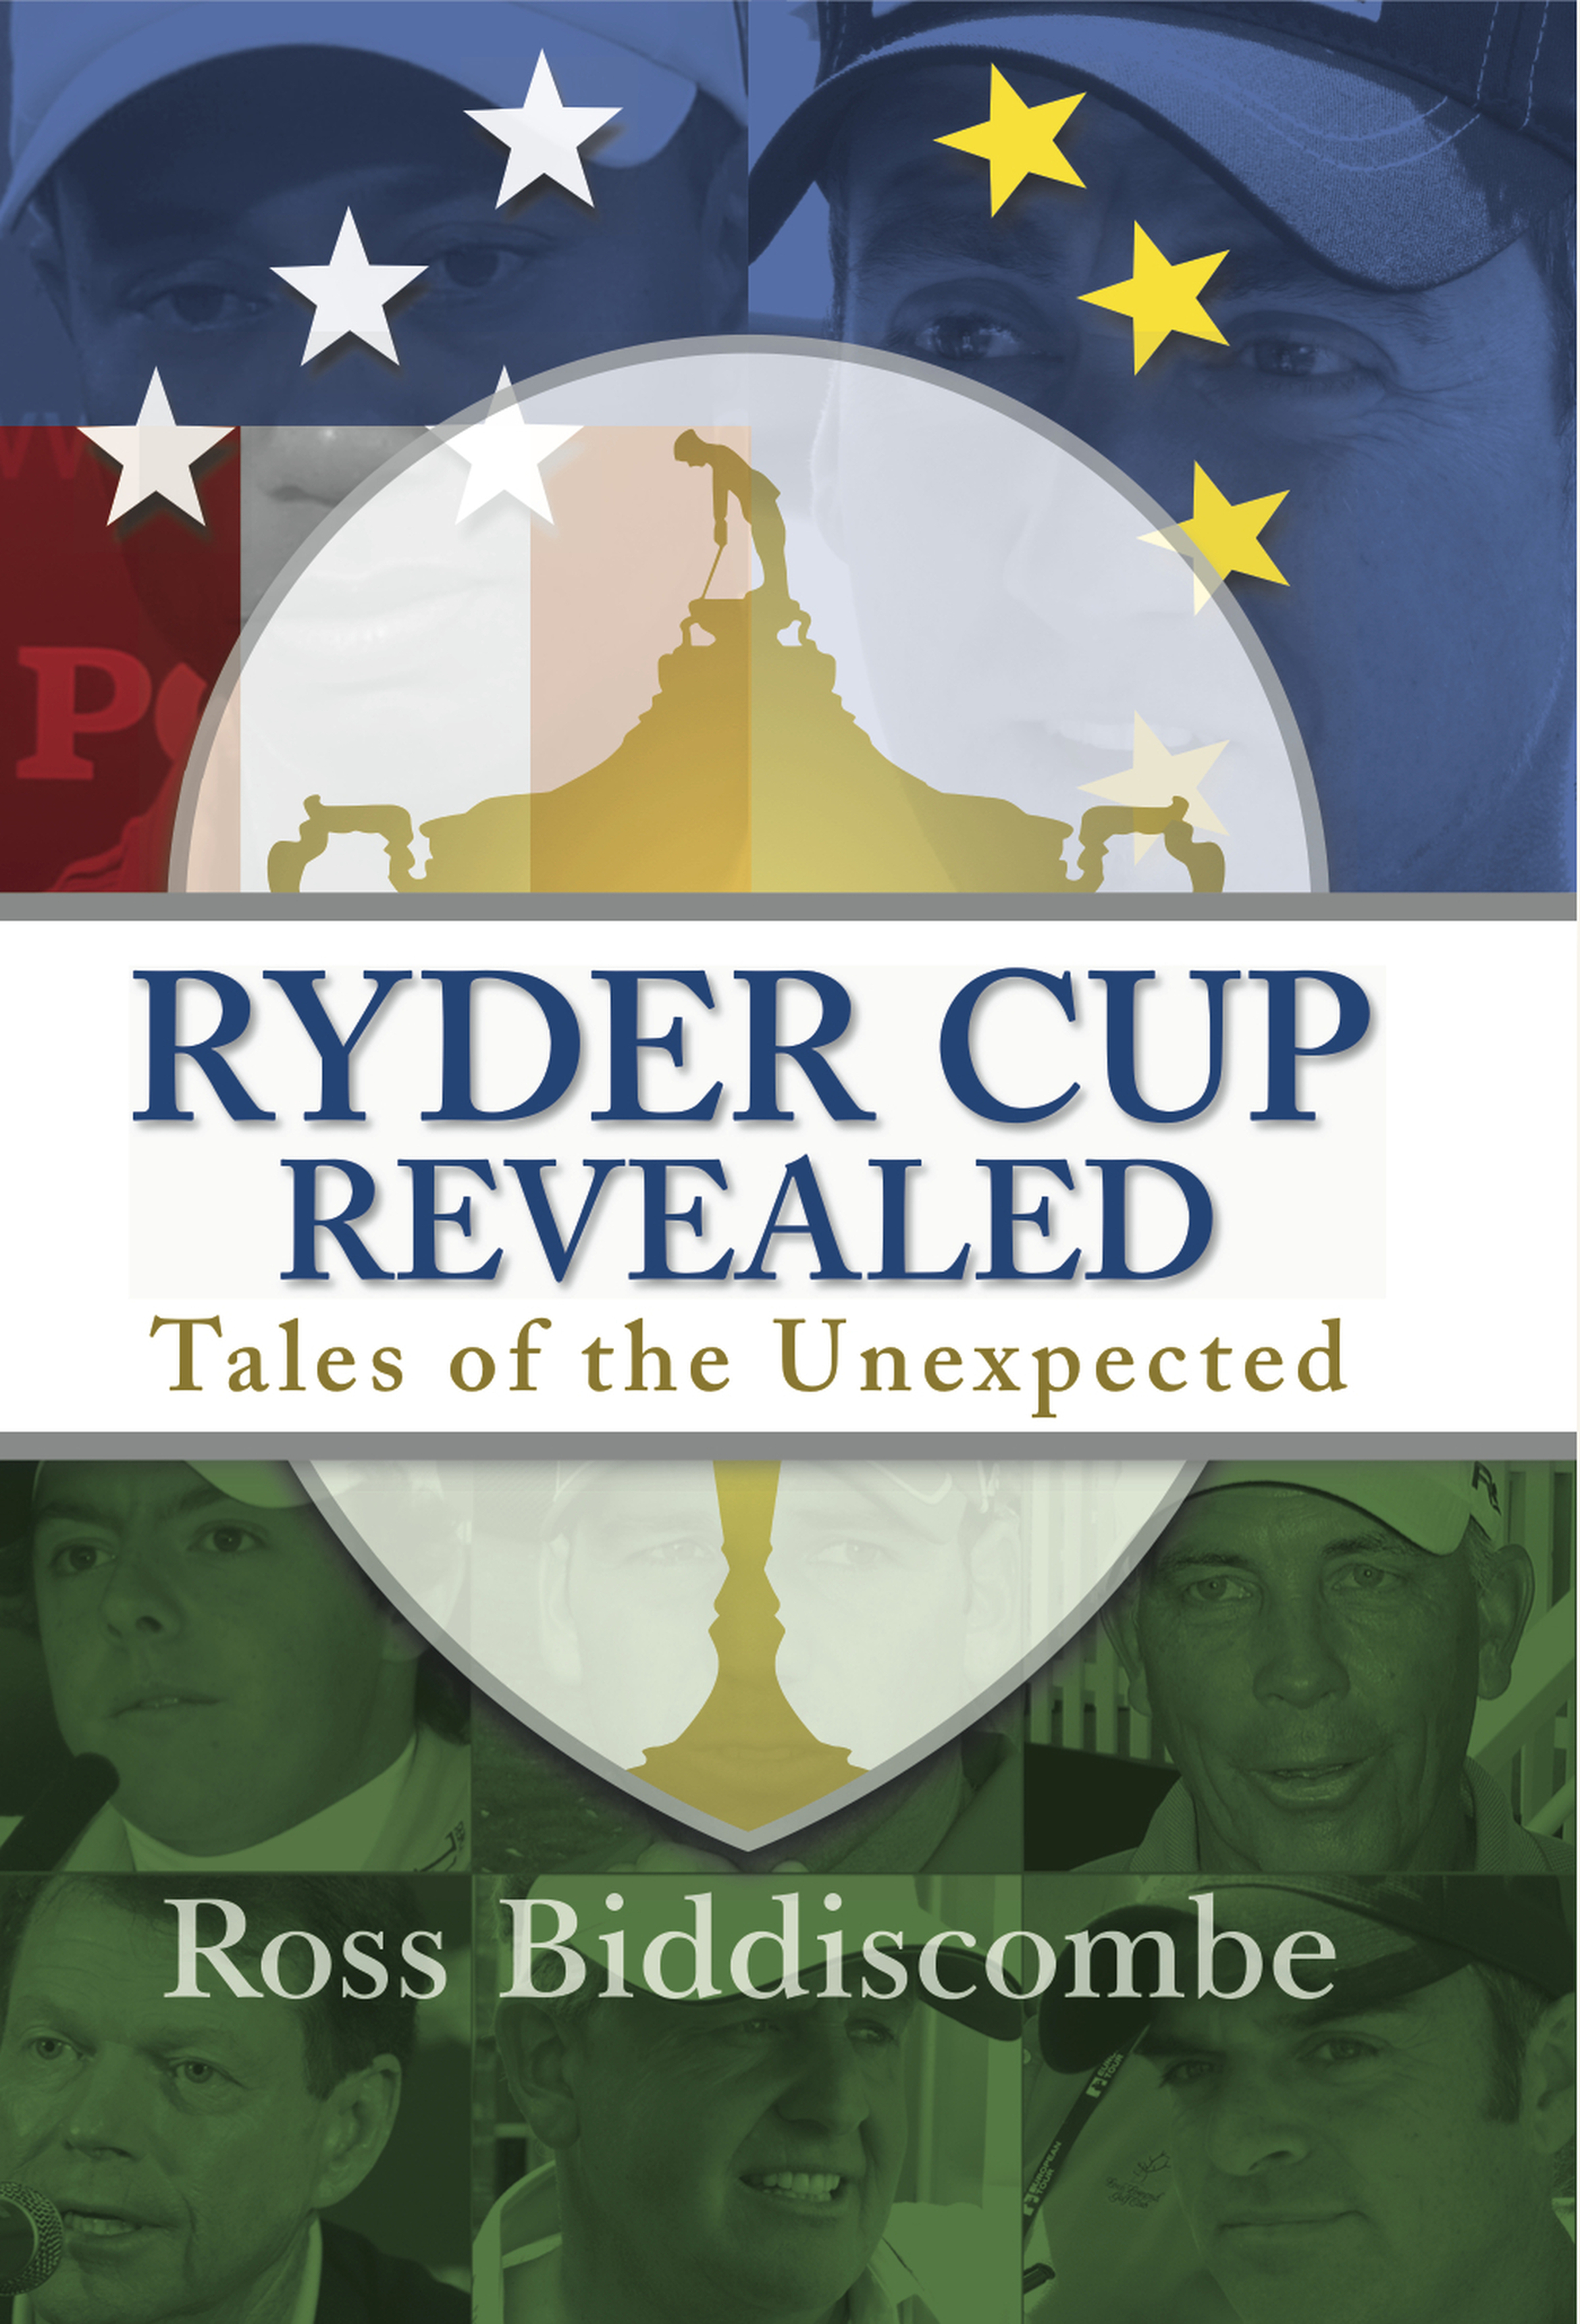 Ross Biddiscombe Ryder Cup Revealed paris revealed